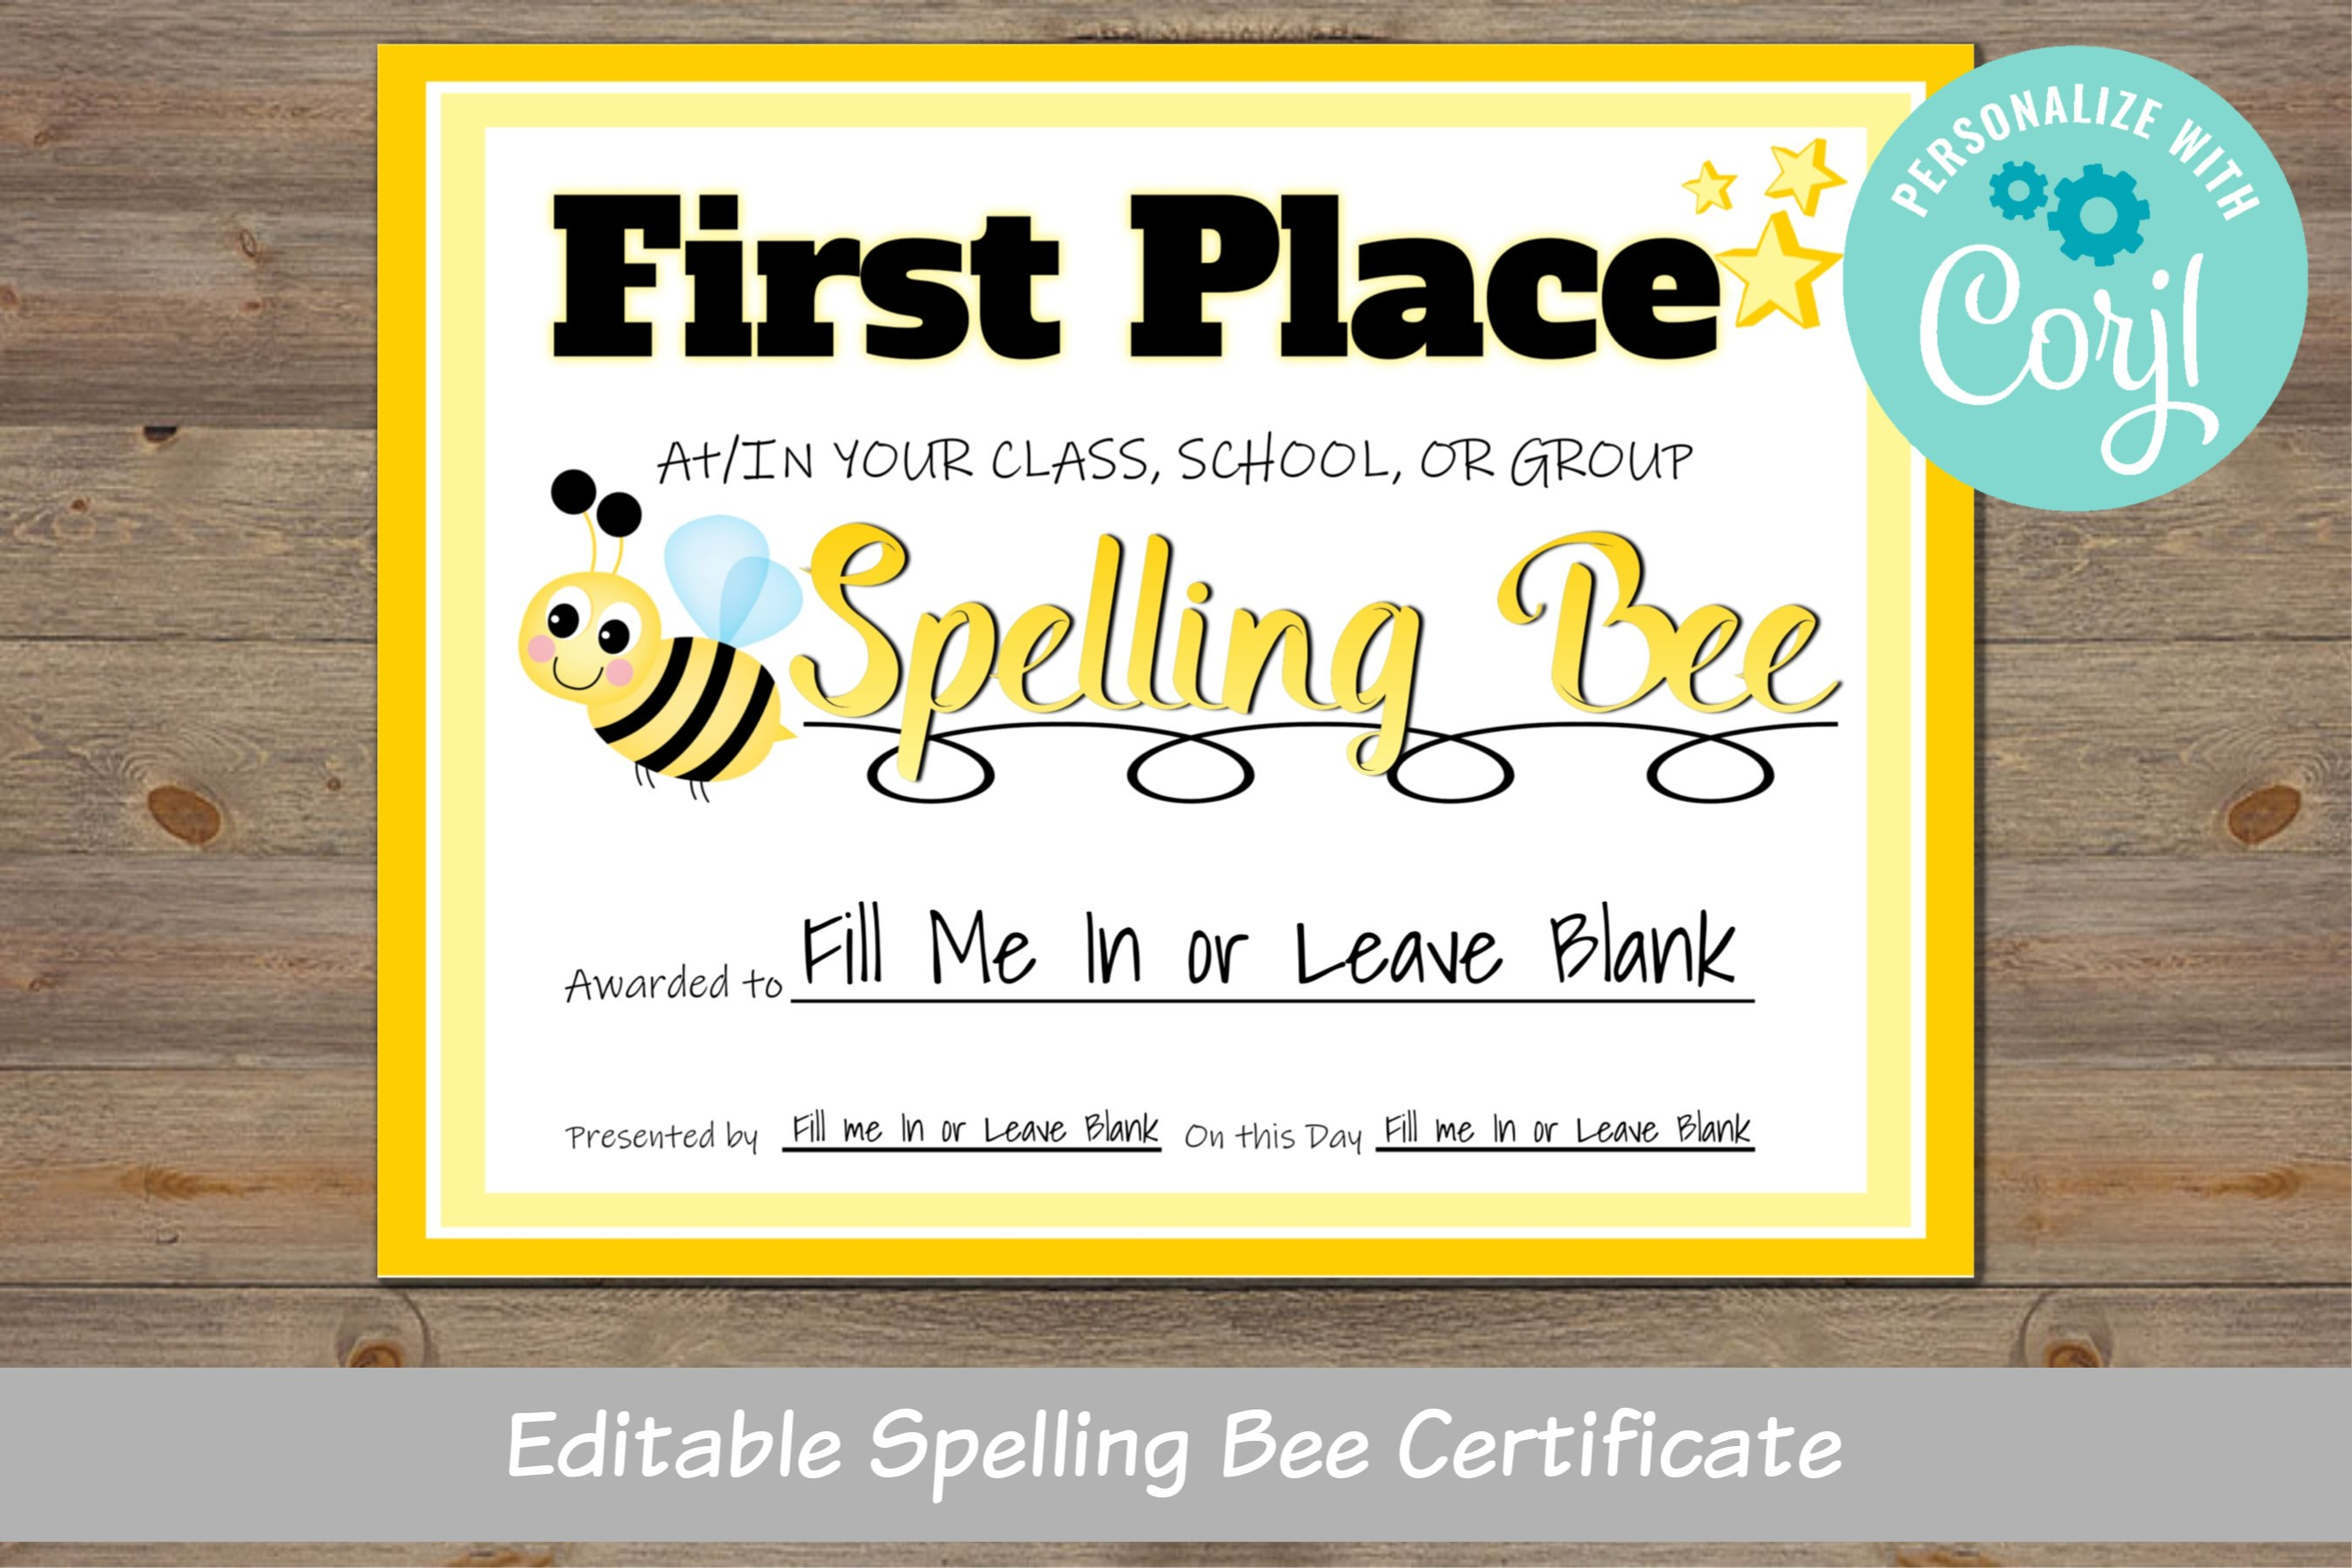 Spelling Bee Award Certificate For School For Classroom For  Etsy With Spelling Bee Award Certificate Template